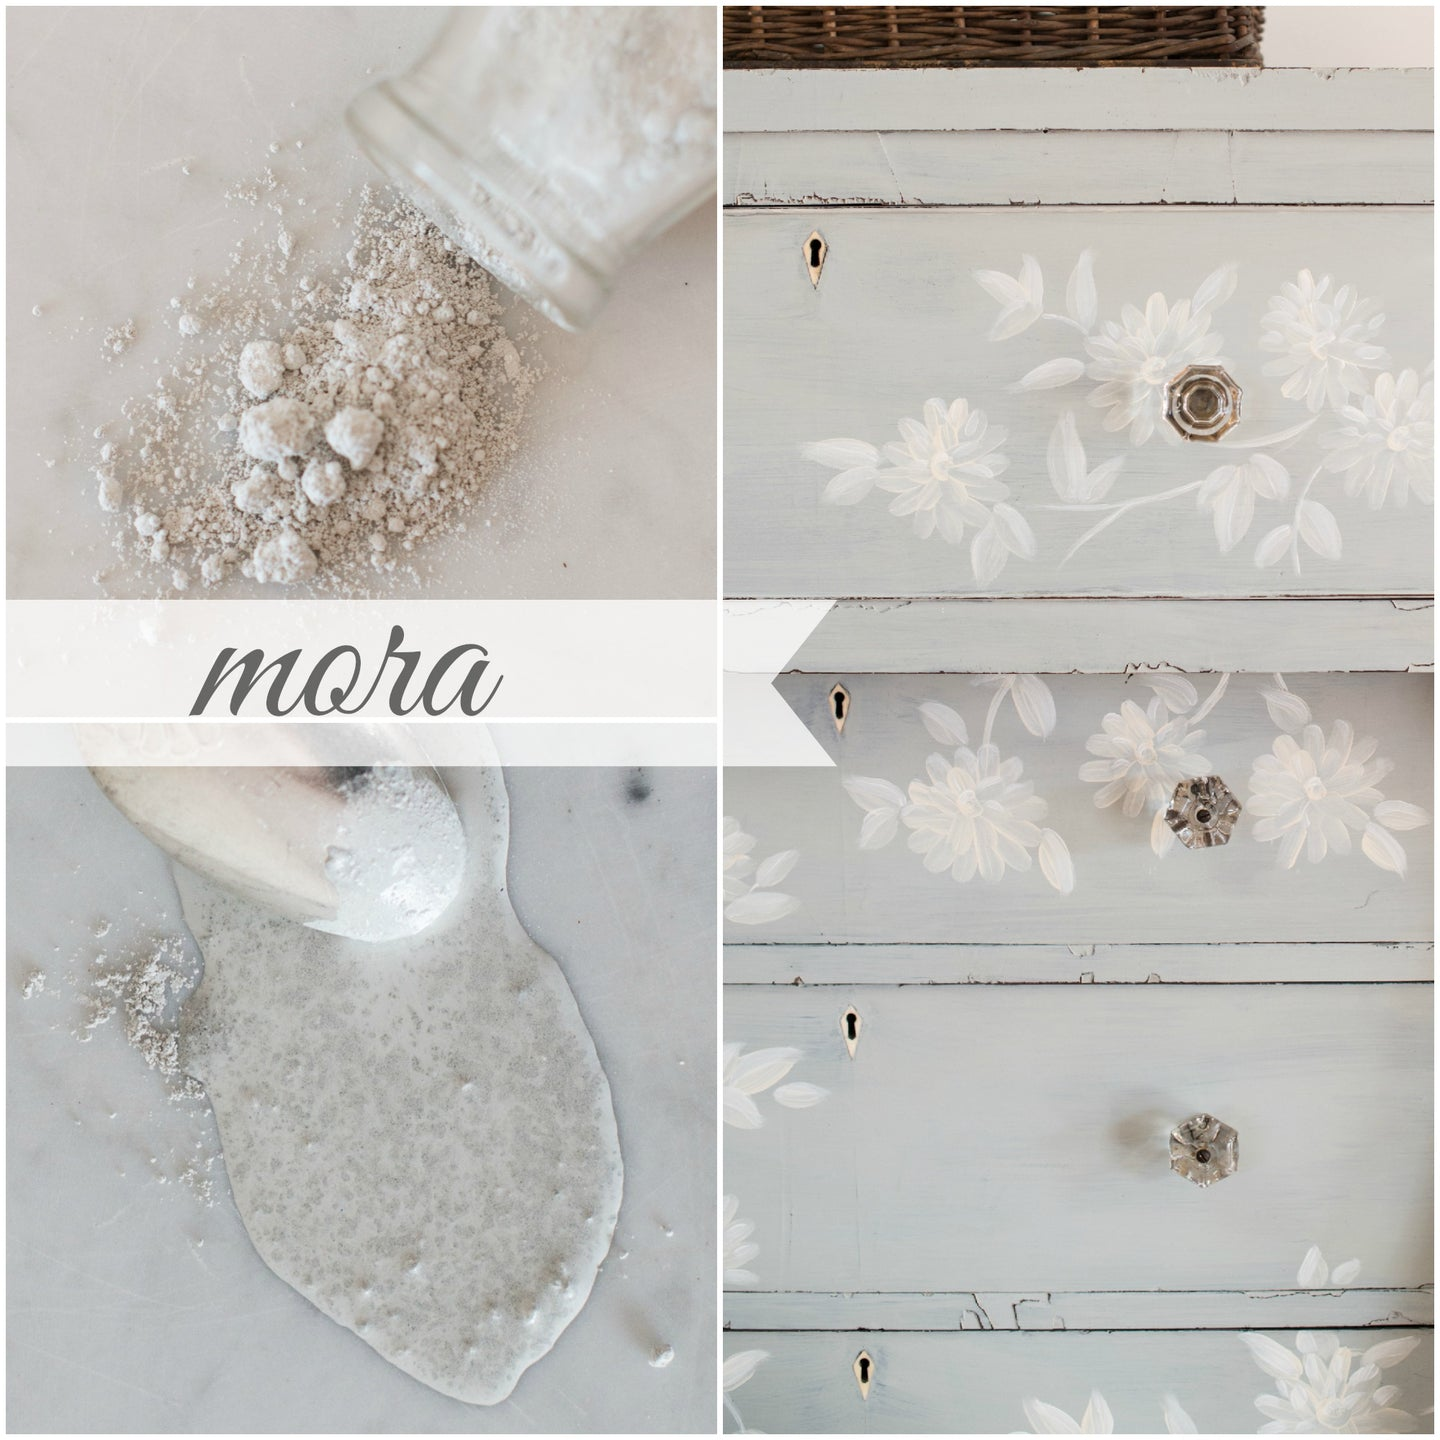 Mora - Miss Mustard Seed Milk Paint 230g